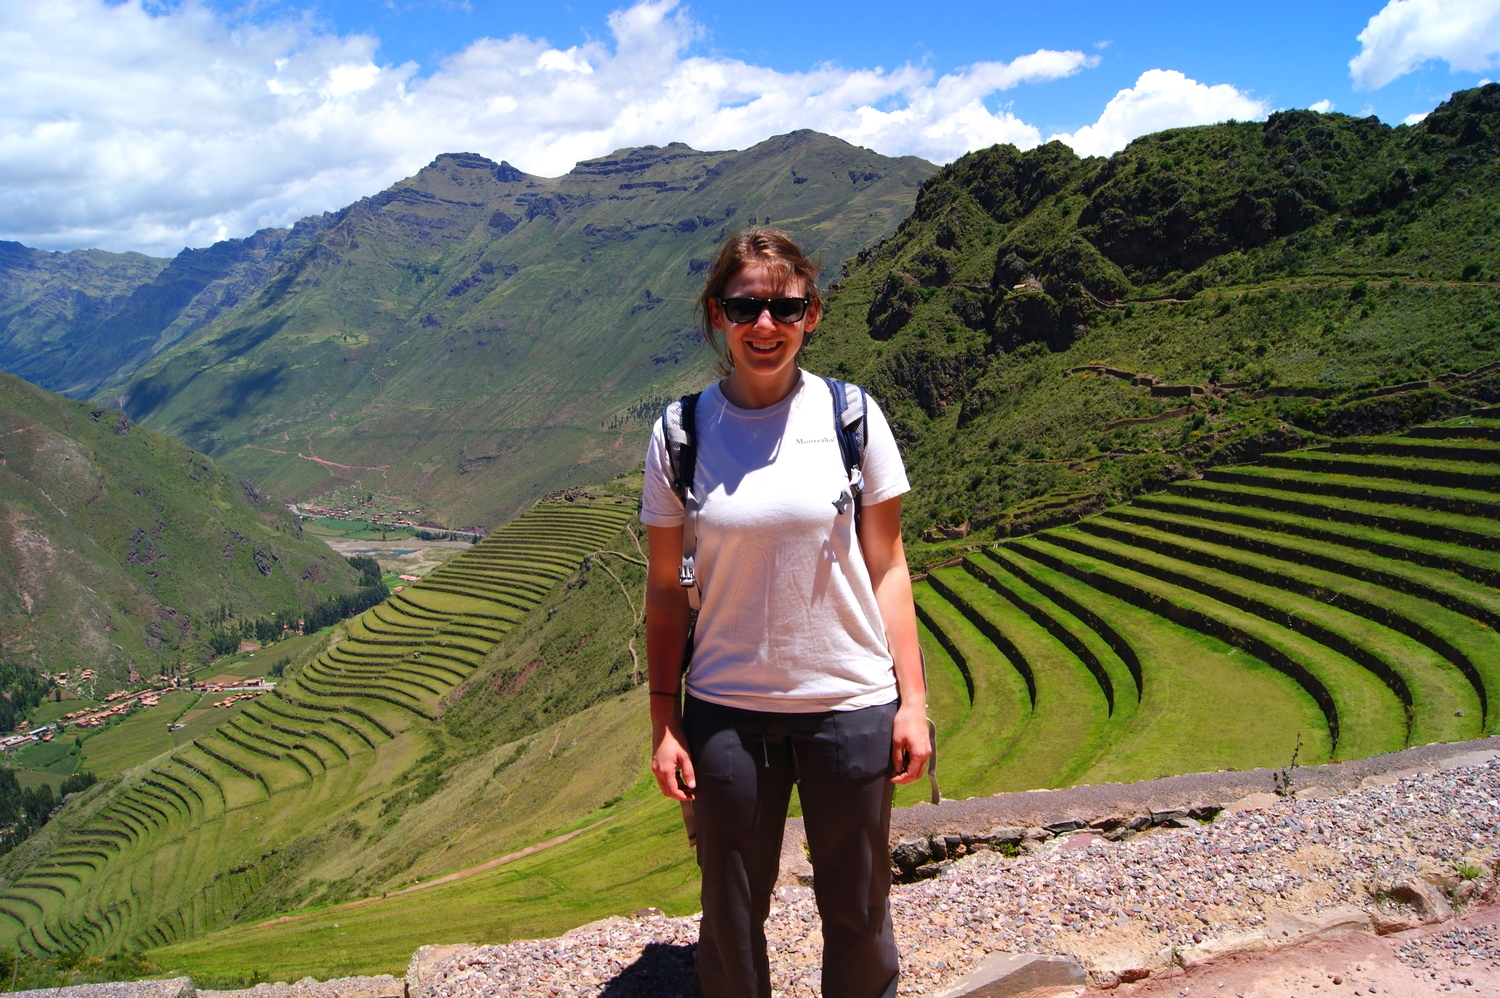 Hurray, made it to Pisac!